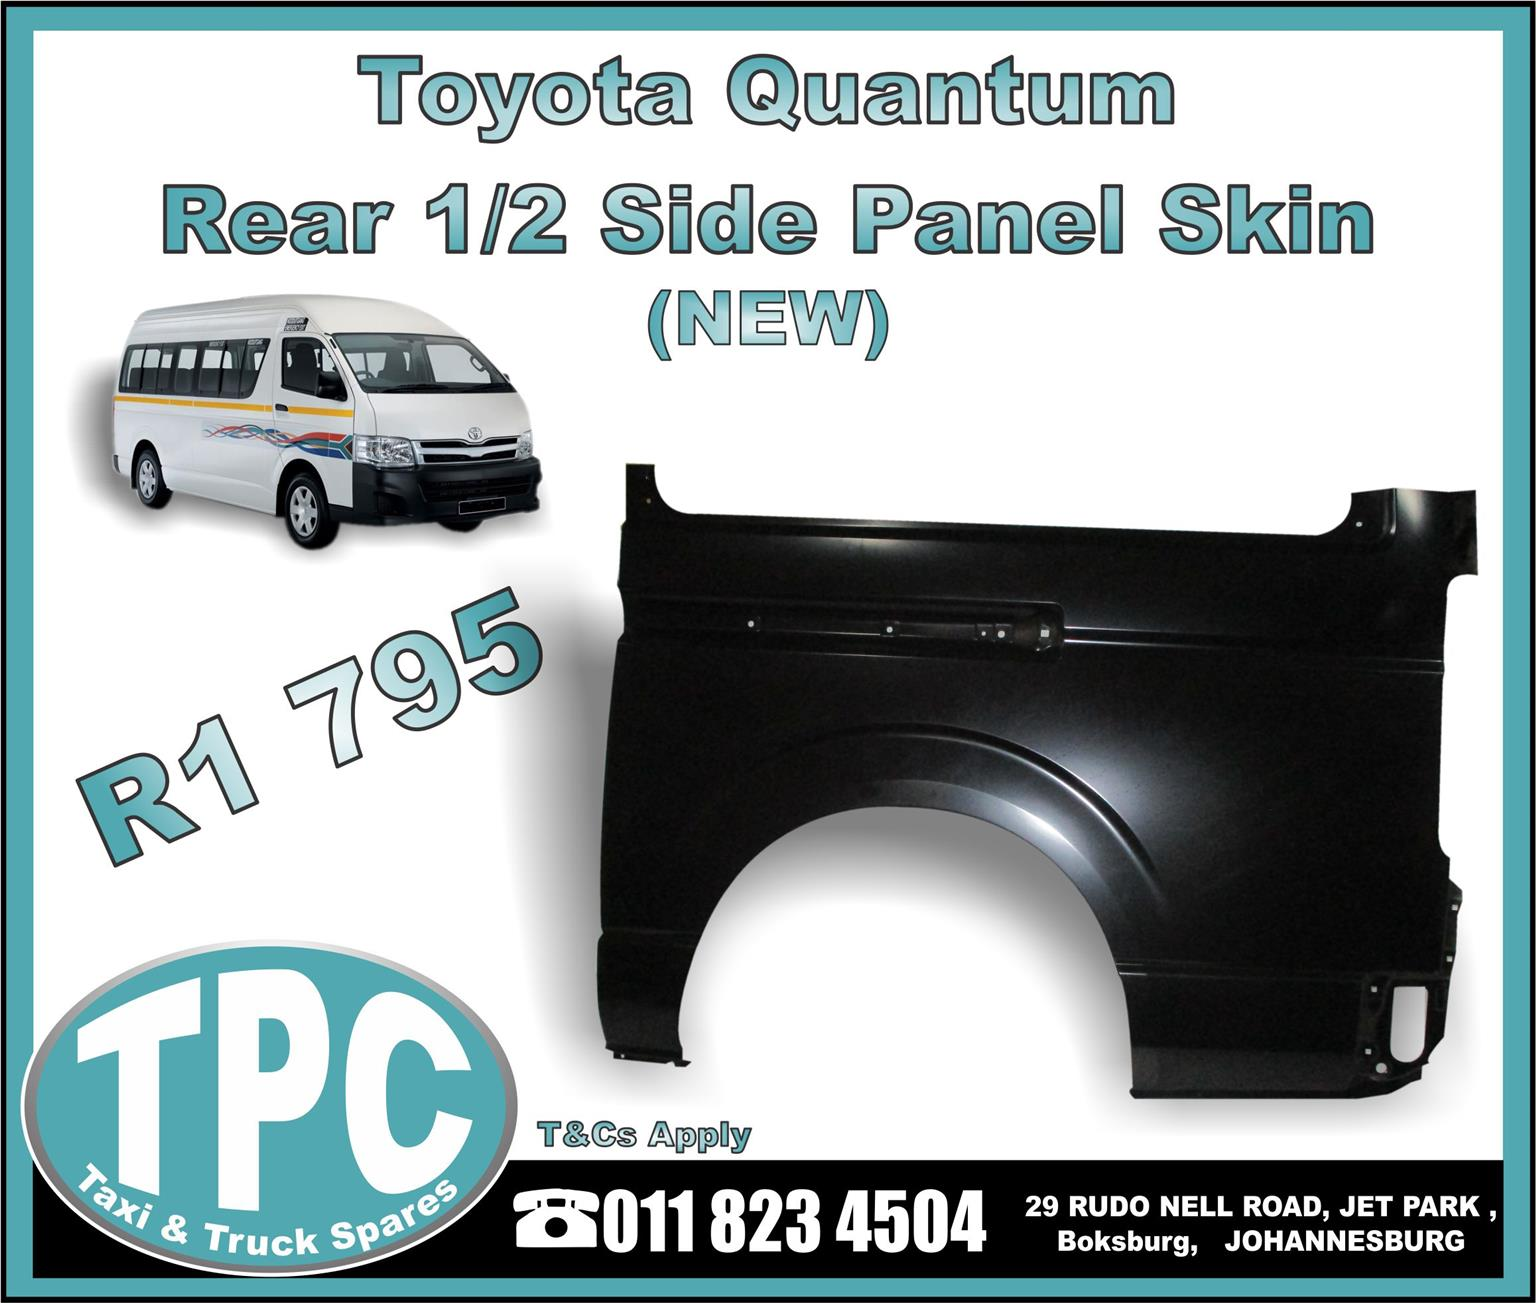 Toyota Quantum Rear 1/2 Side Panel Skin - New And Used Quality Replacement Taxi Spare Parts - TPC